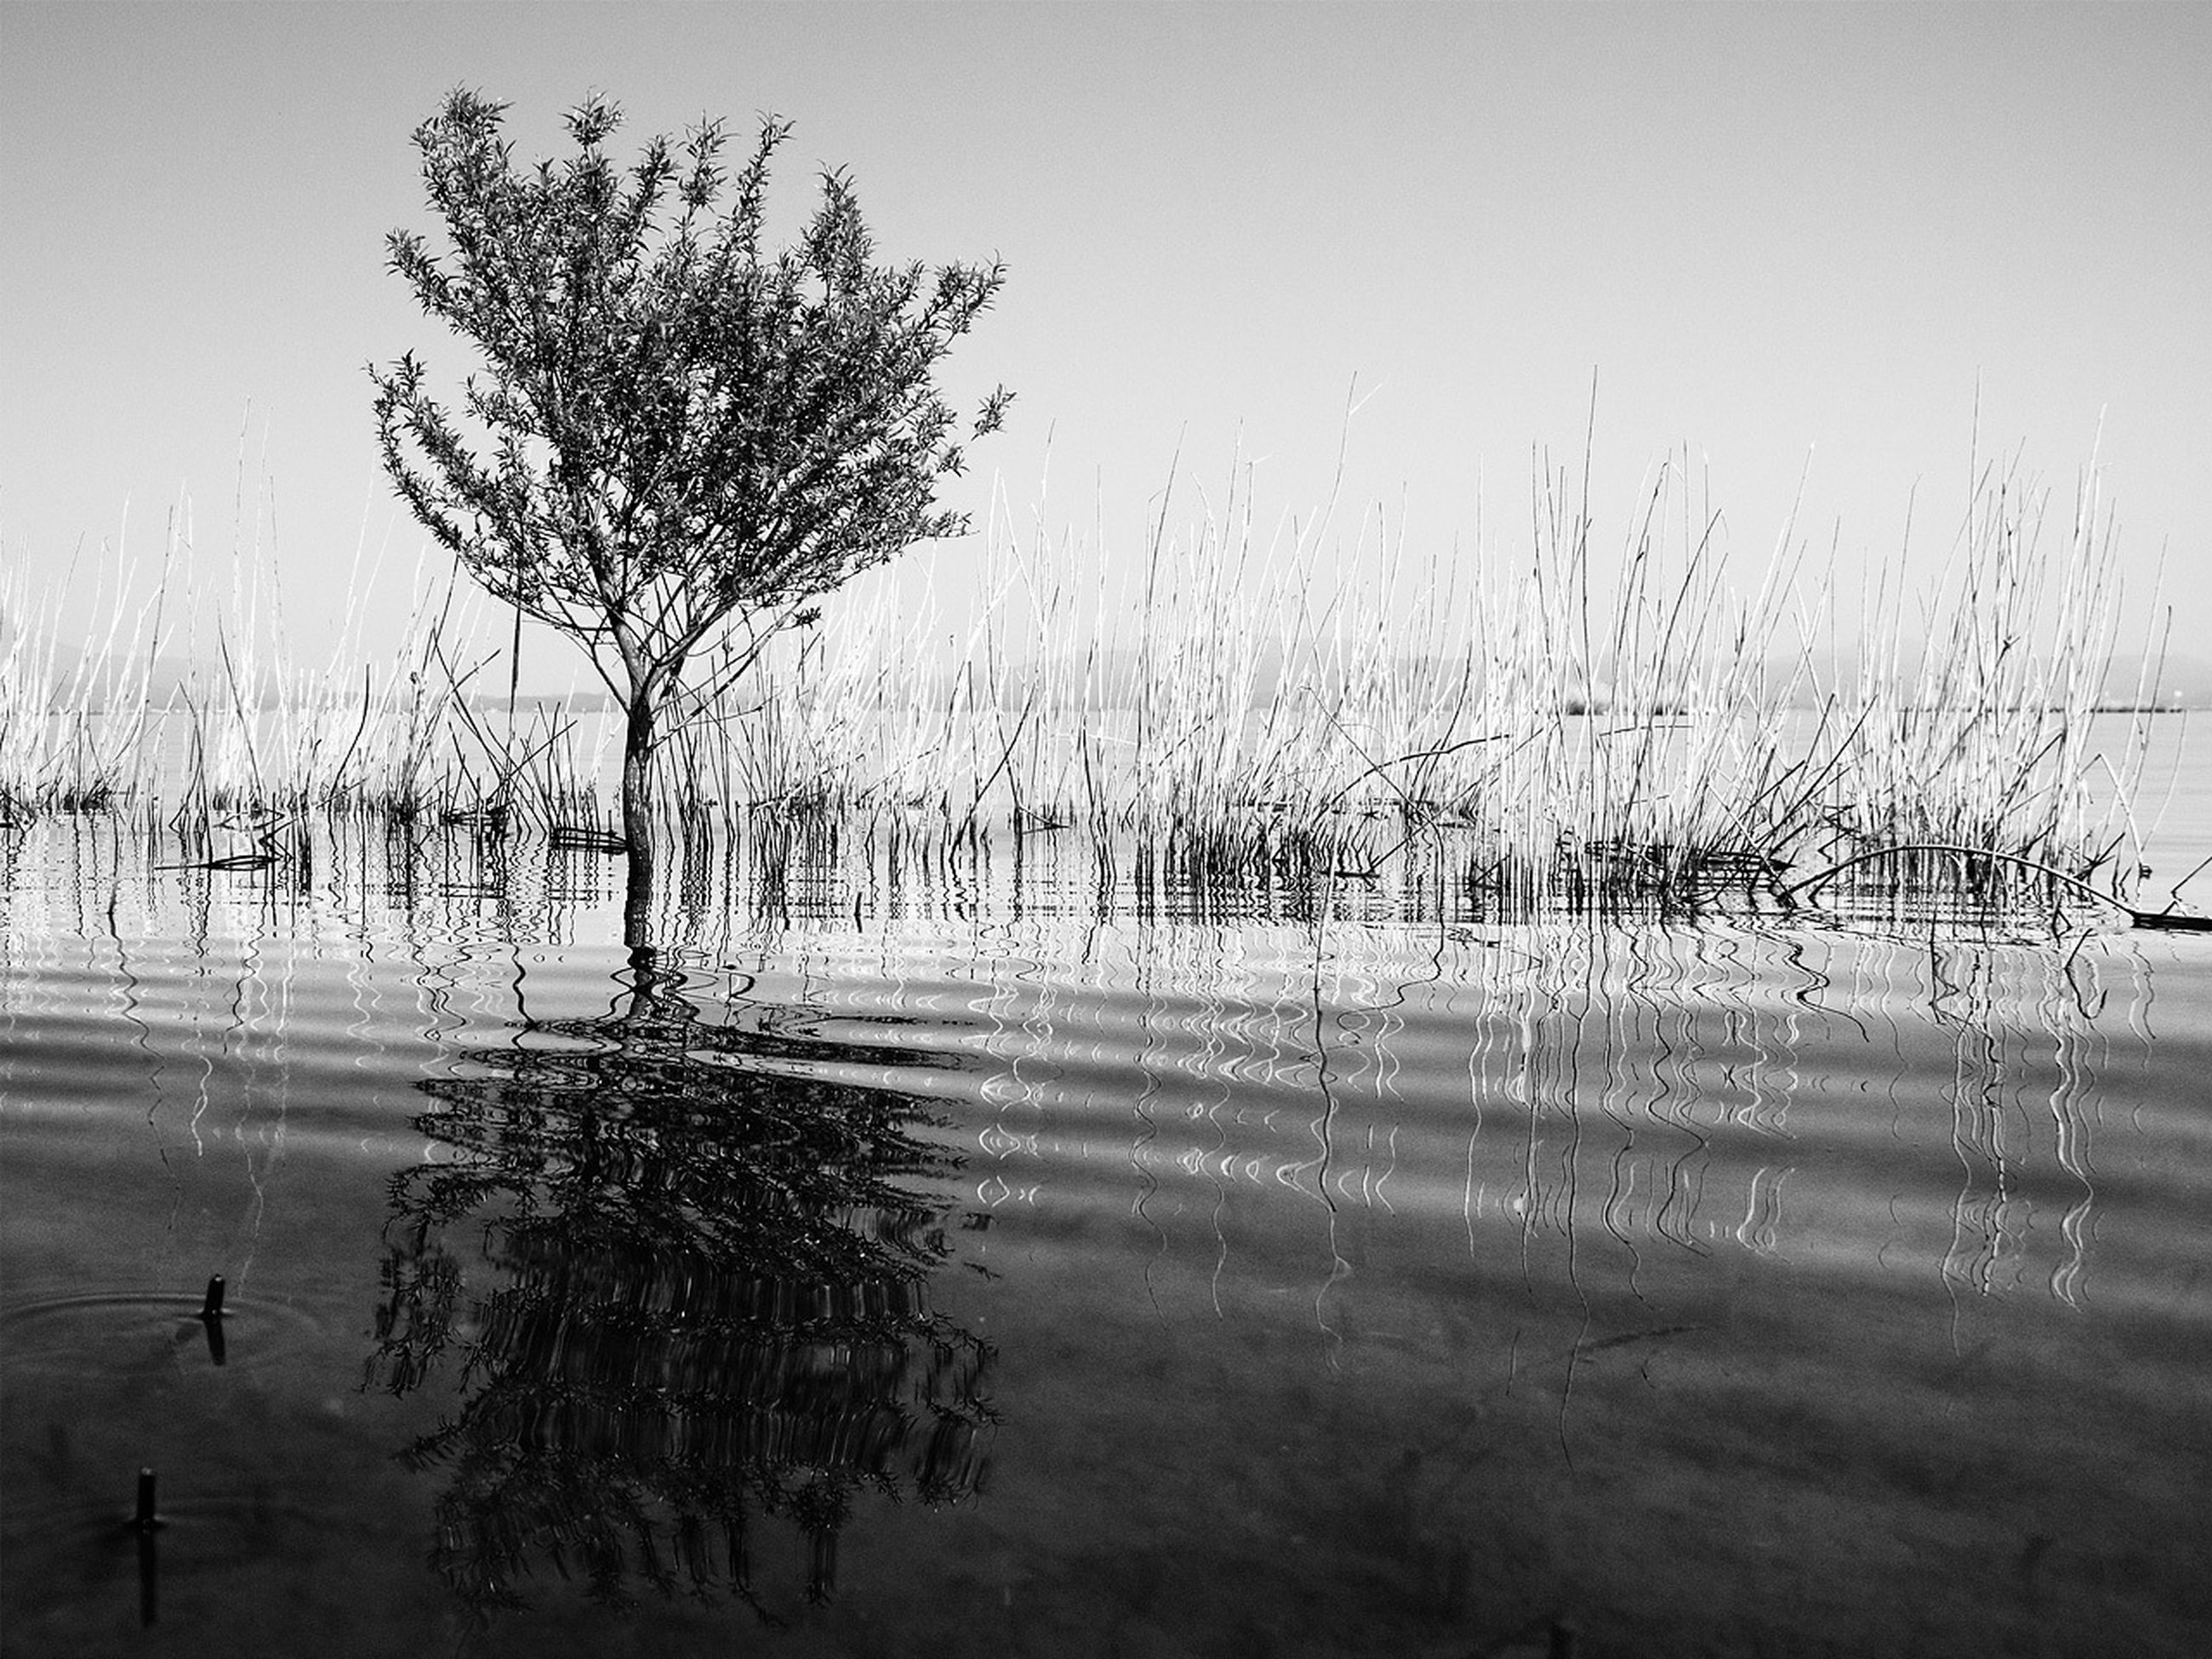 water, tree, fog, tranquility, weather, tranquil scene, nature, wet, foggy, beauty in nature, sky, scenics, lake, rain, field, growth, grass, day, drop